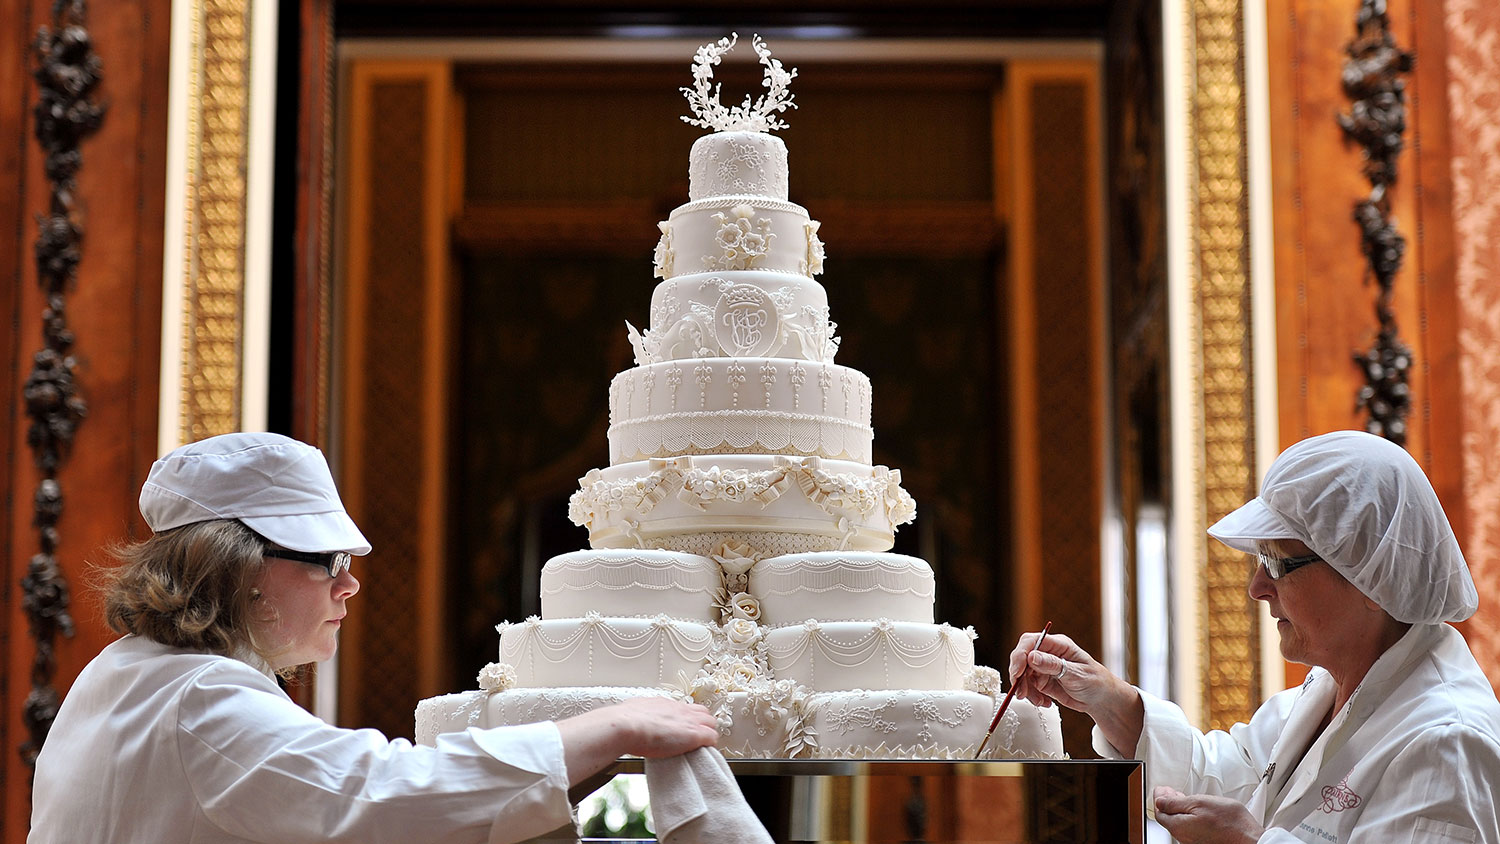 auctioned-food-wedding-cake-FT-SS0417.jpg